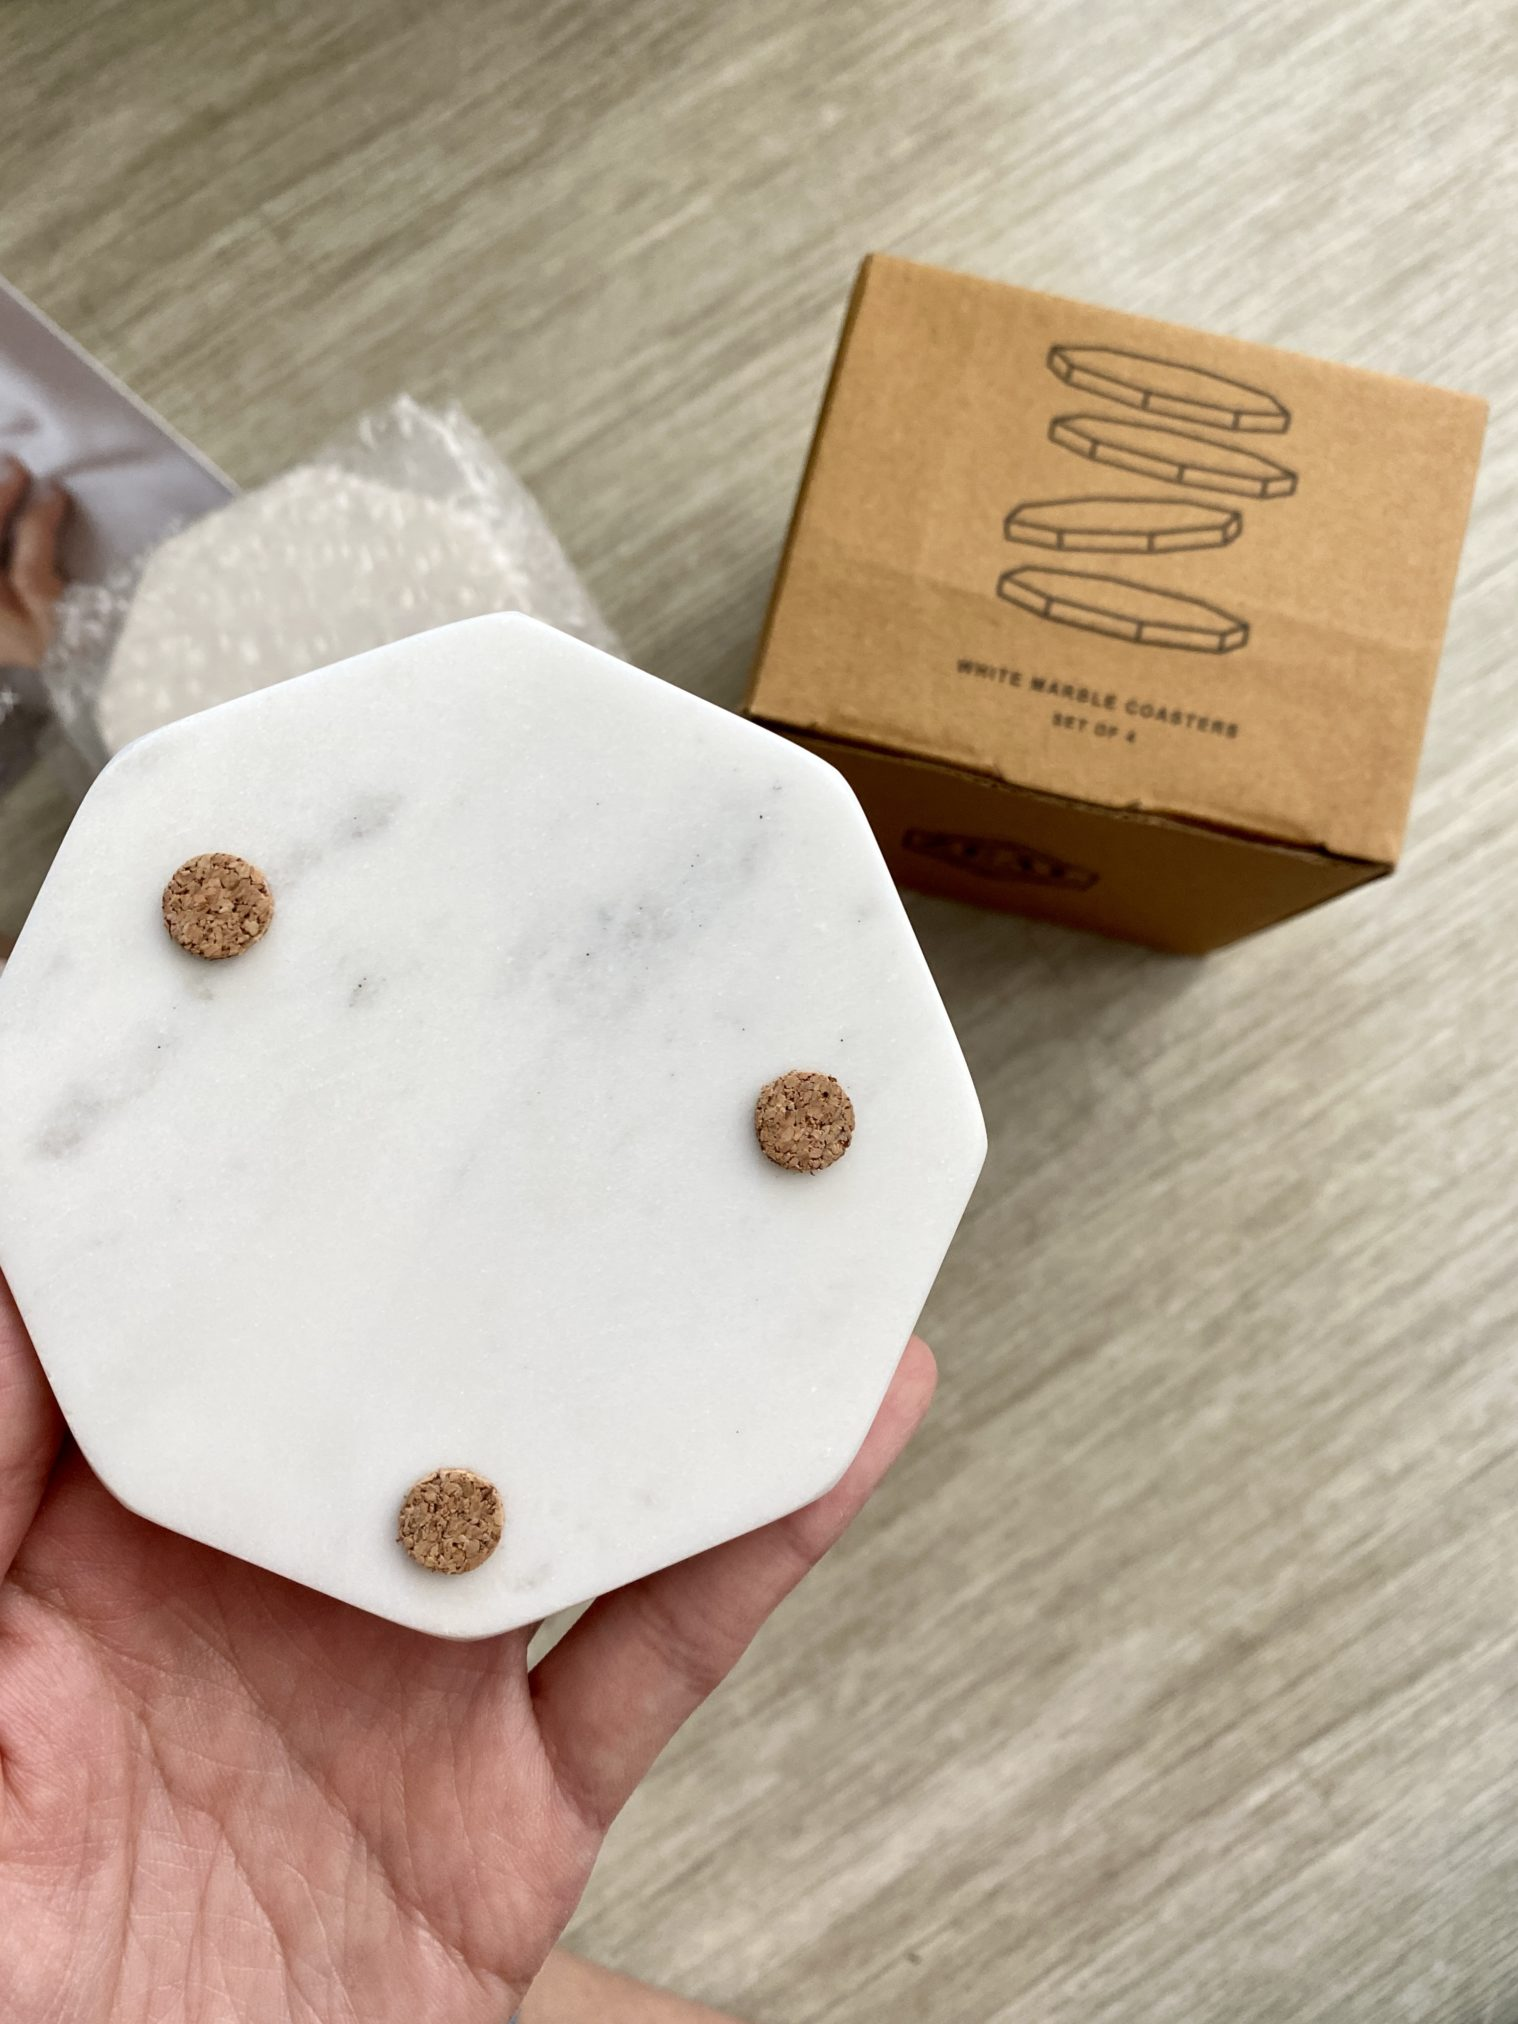 Zeal Living Marble Coasters - CAUSEBOX Winter 2020 Review